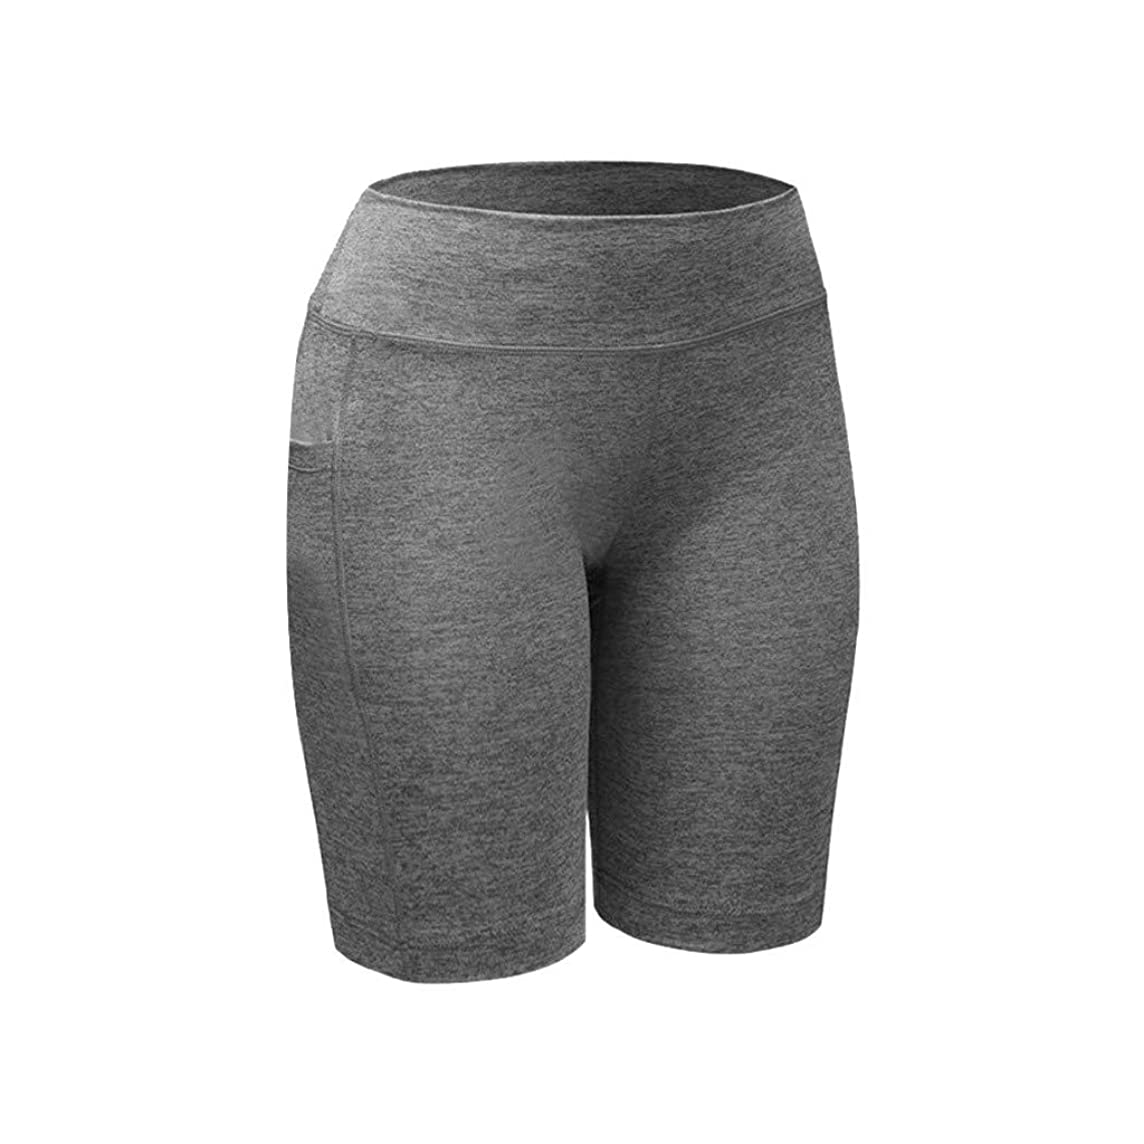 Kangma Women Pants Sport Leggings Solid Color Tummy Control Workout Running Yoga Five-Point Length Pants with Pocket